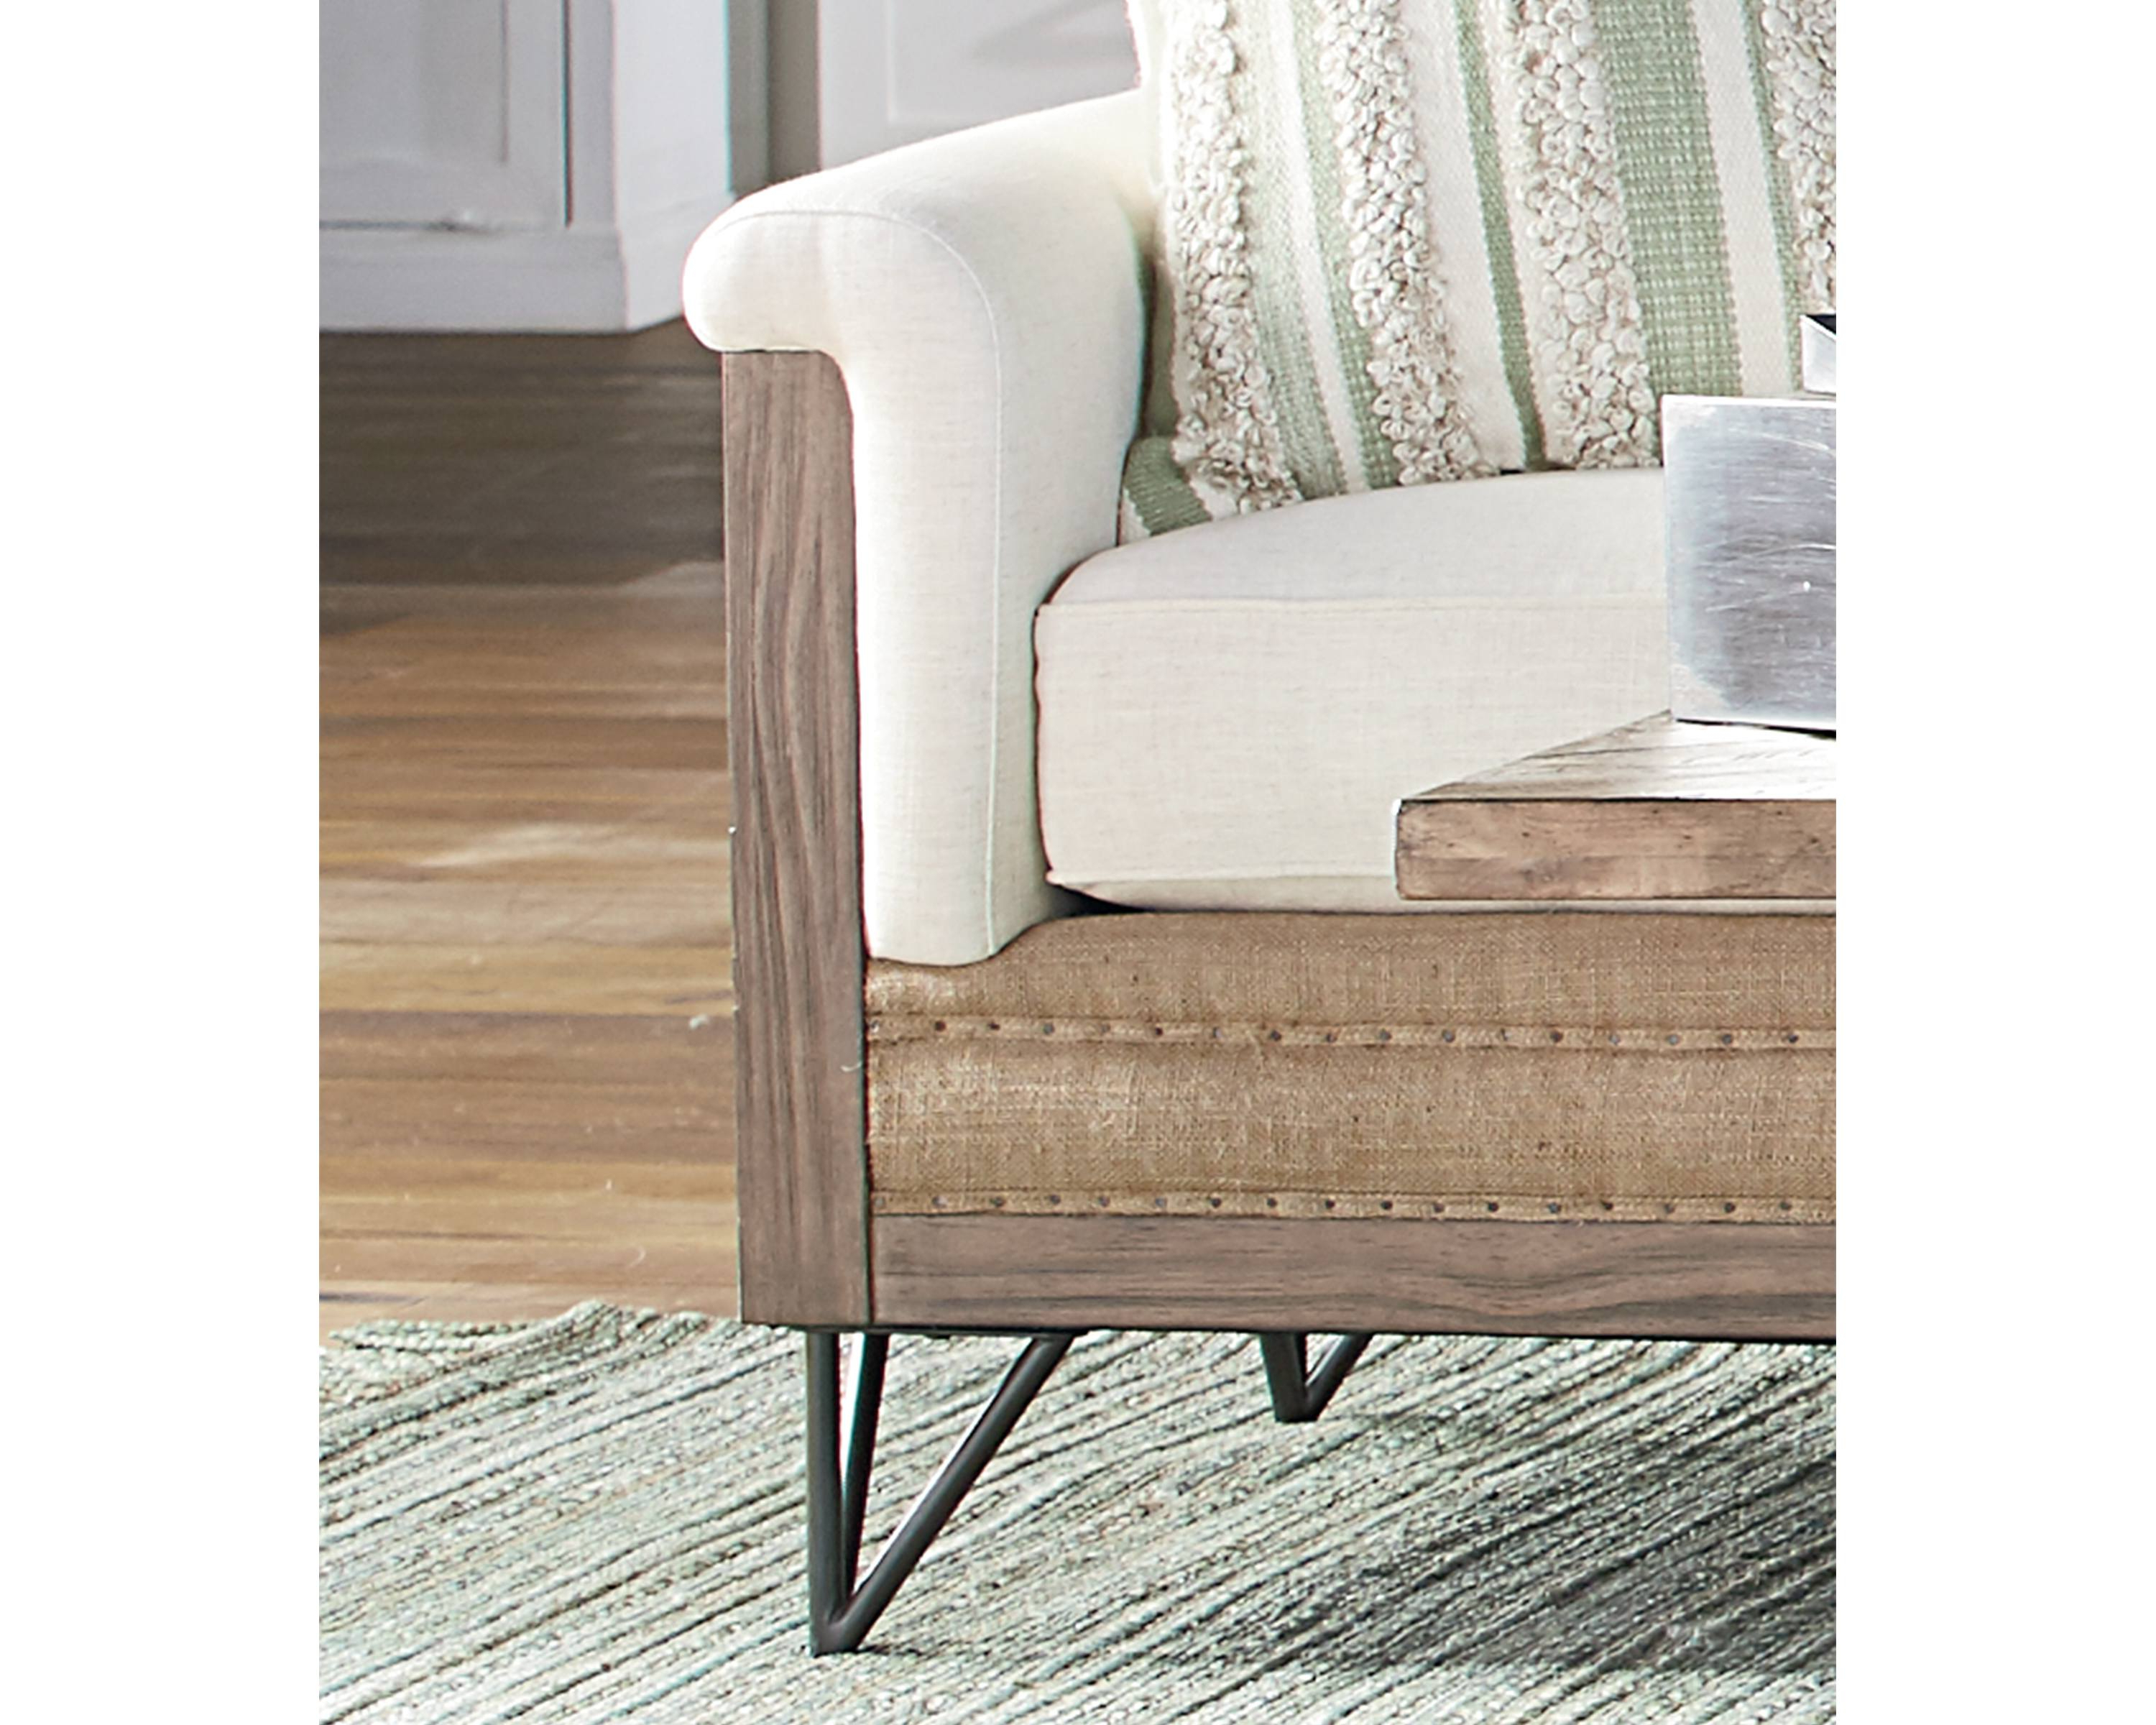 Most Up To Date Paradigm Sofa – Magnolia Home Intended For Magnolia Home Paradigm Sofa Chairs By Joanna Gaines (View 5 of 20)